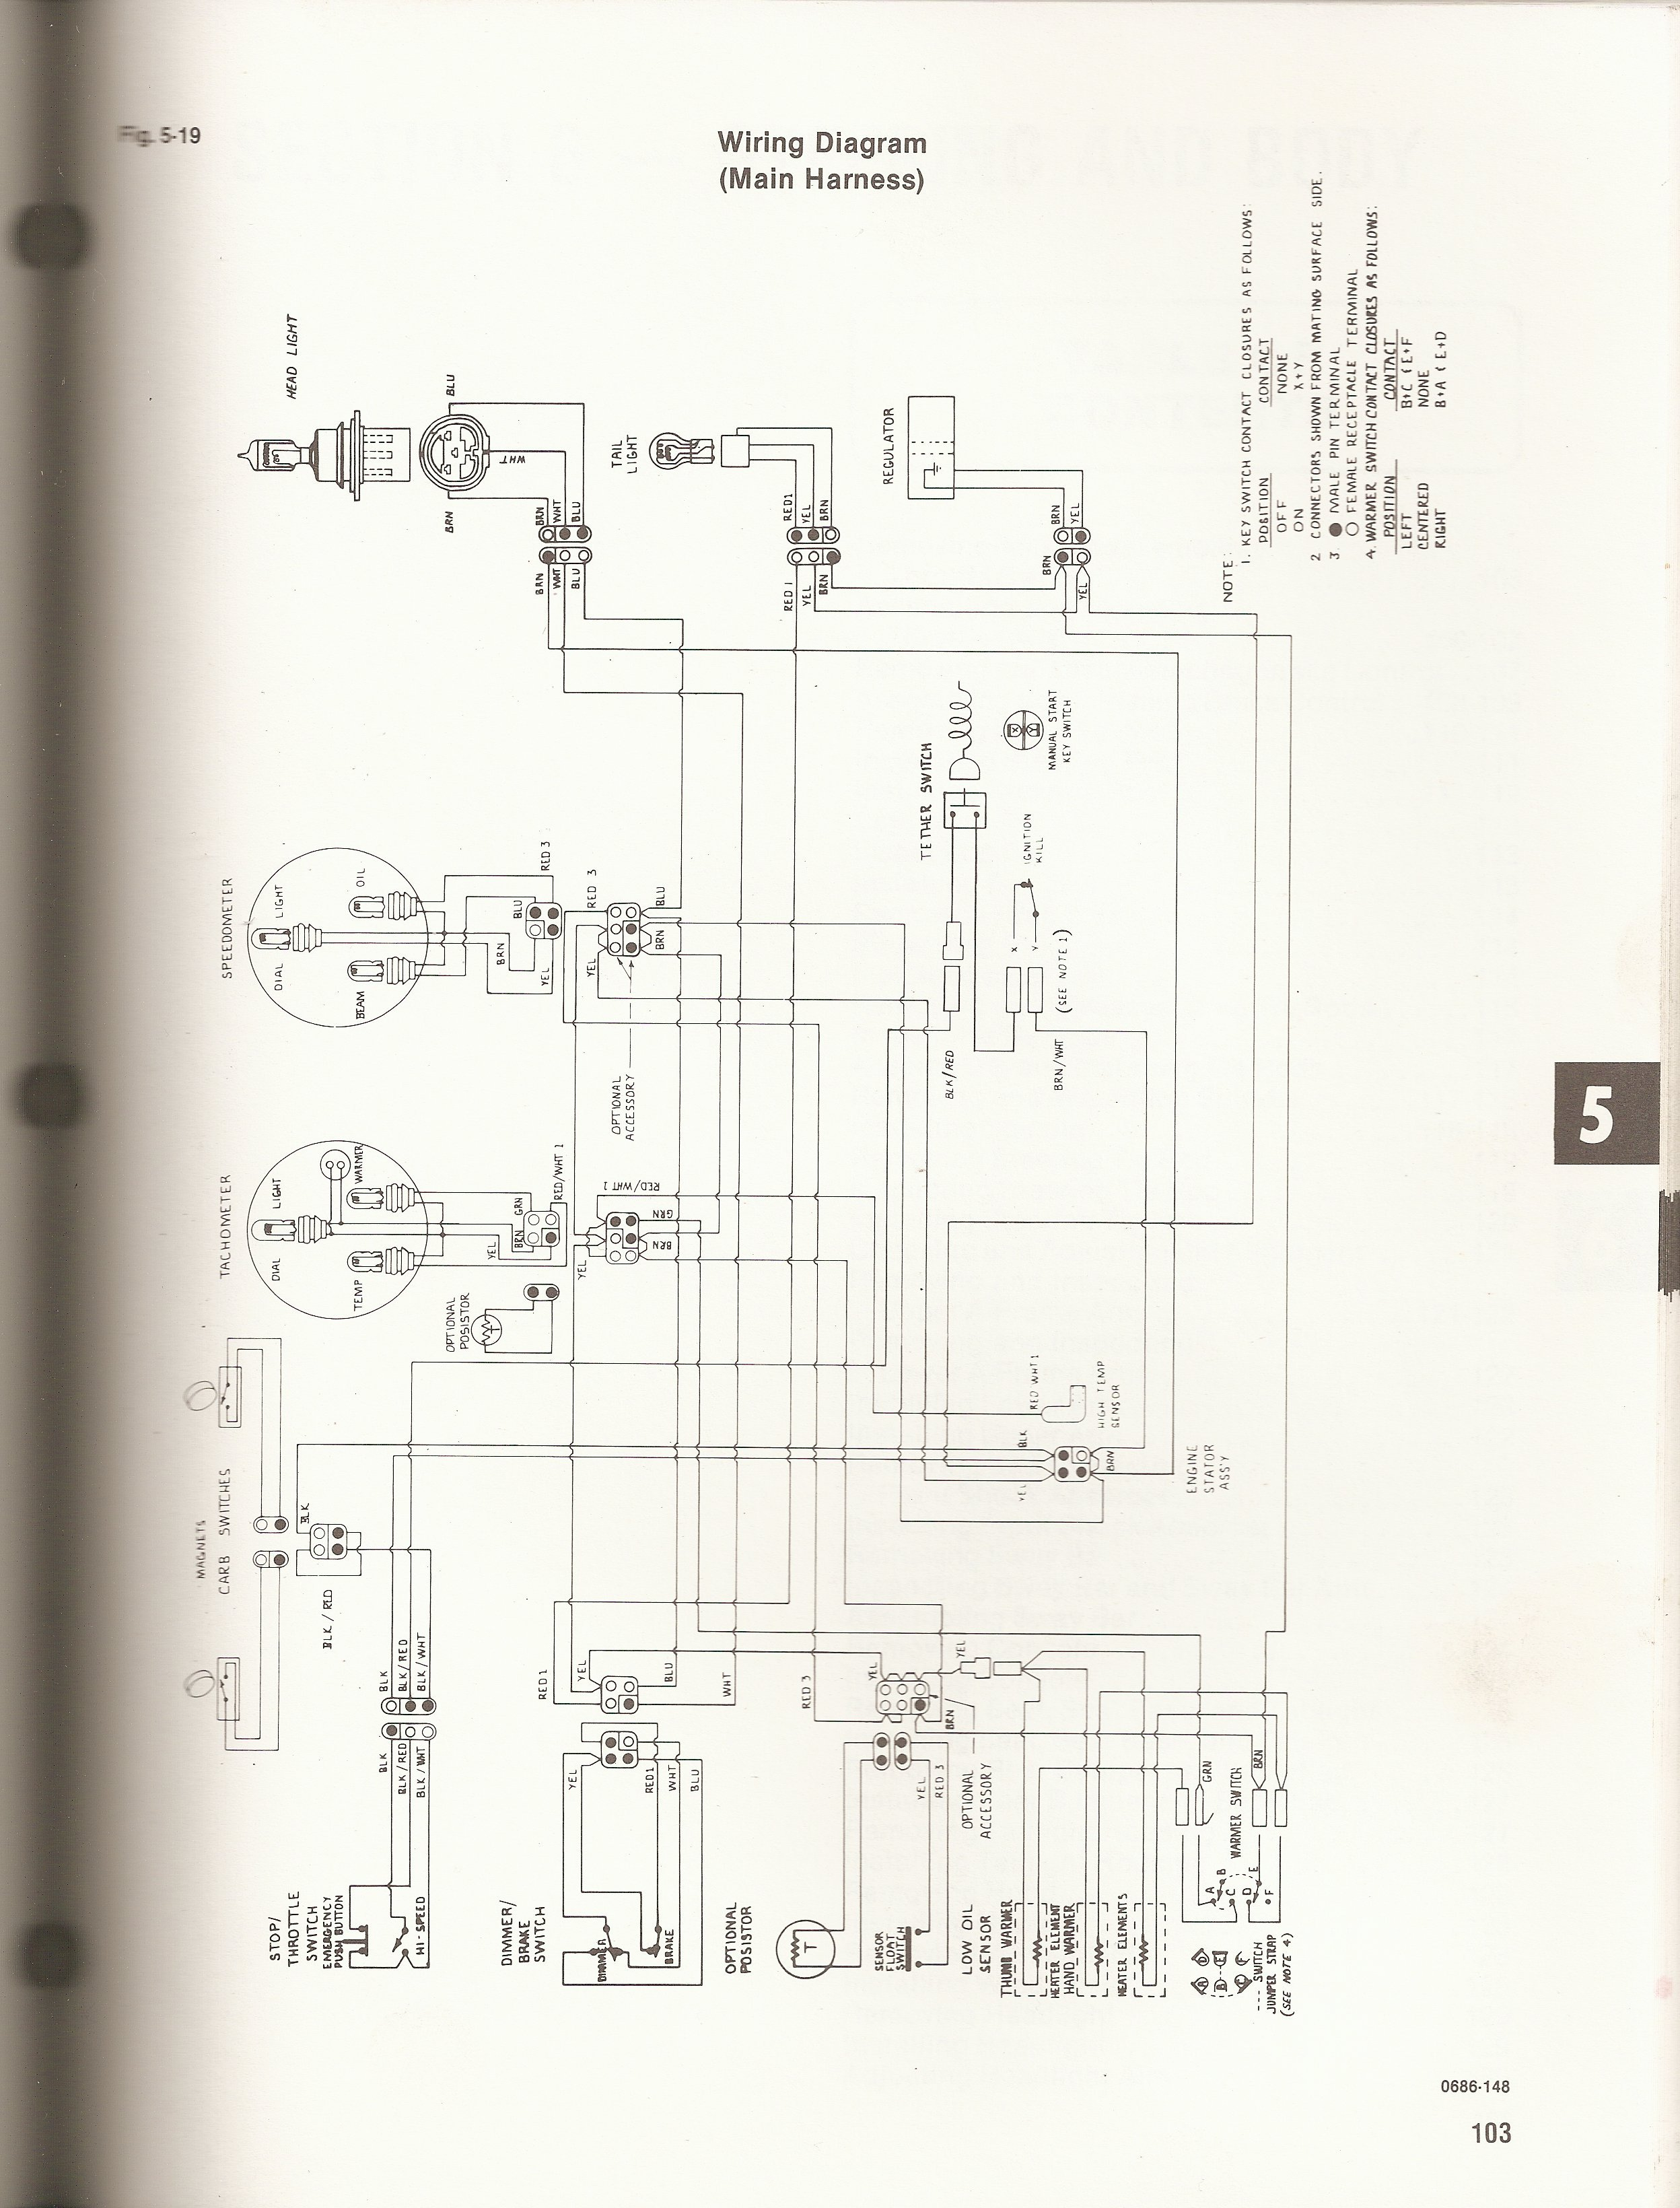 2008 arctic cat 700 wiring harness wiring diagram post  1990 arctic cat prowler wiring diagram #10